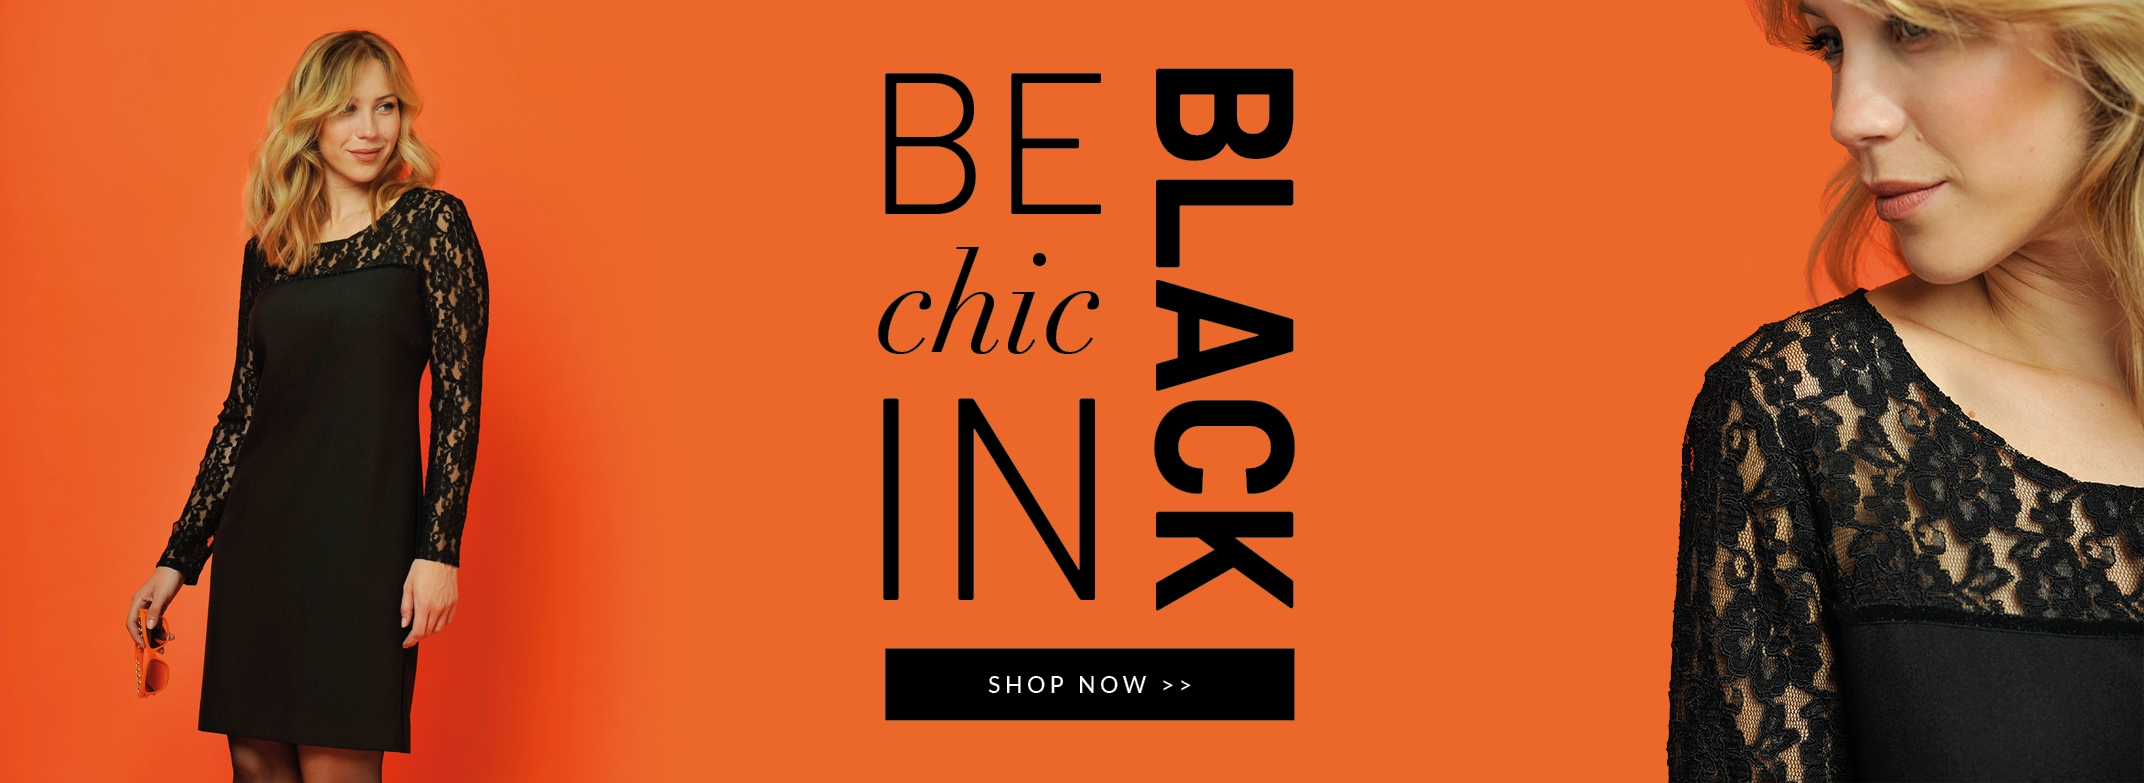 Be chic in black !